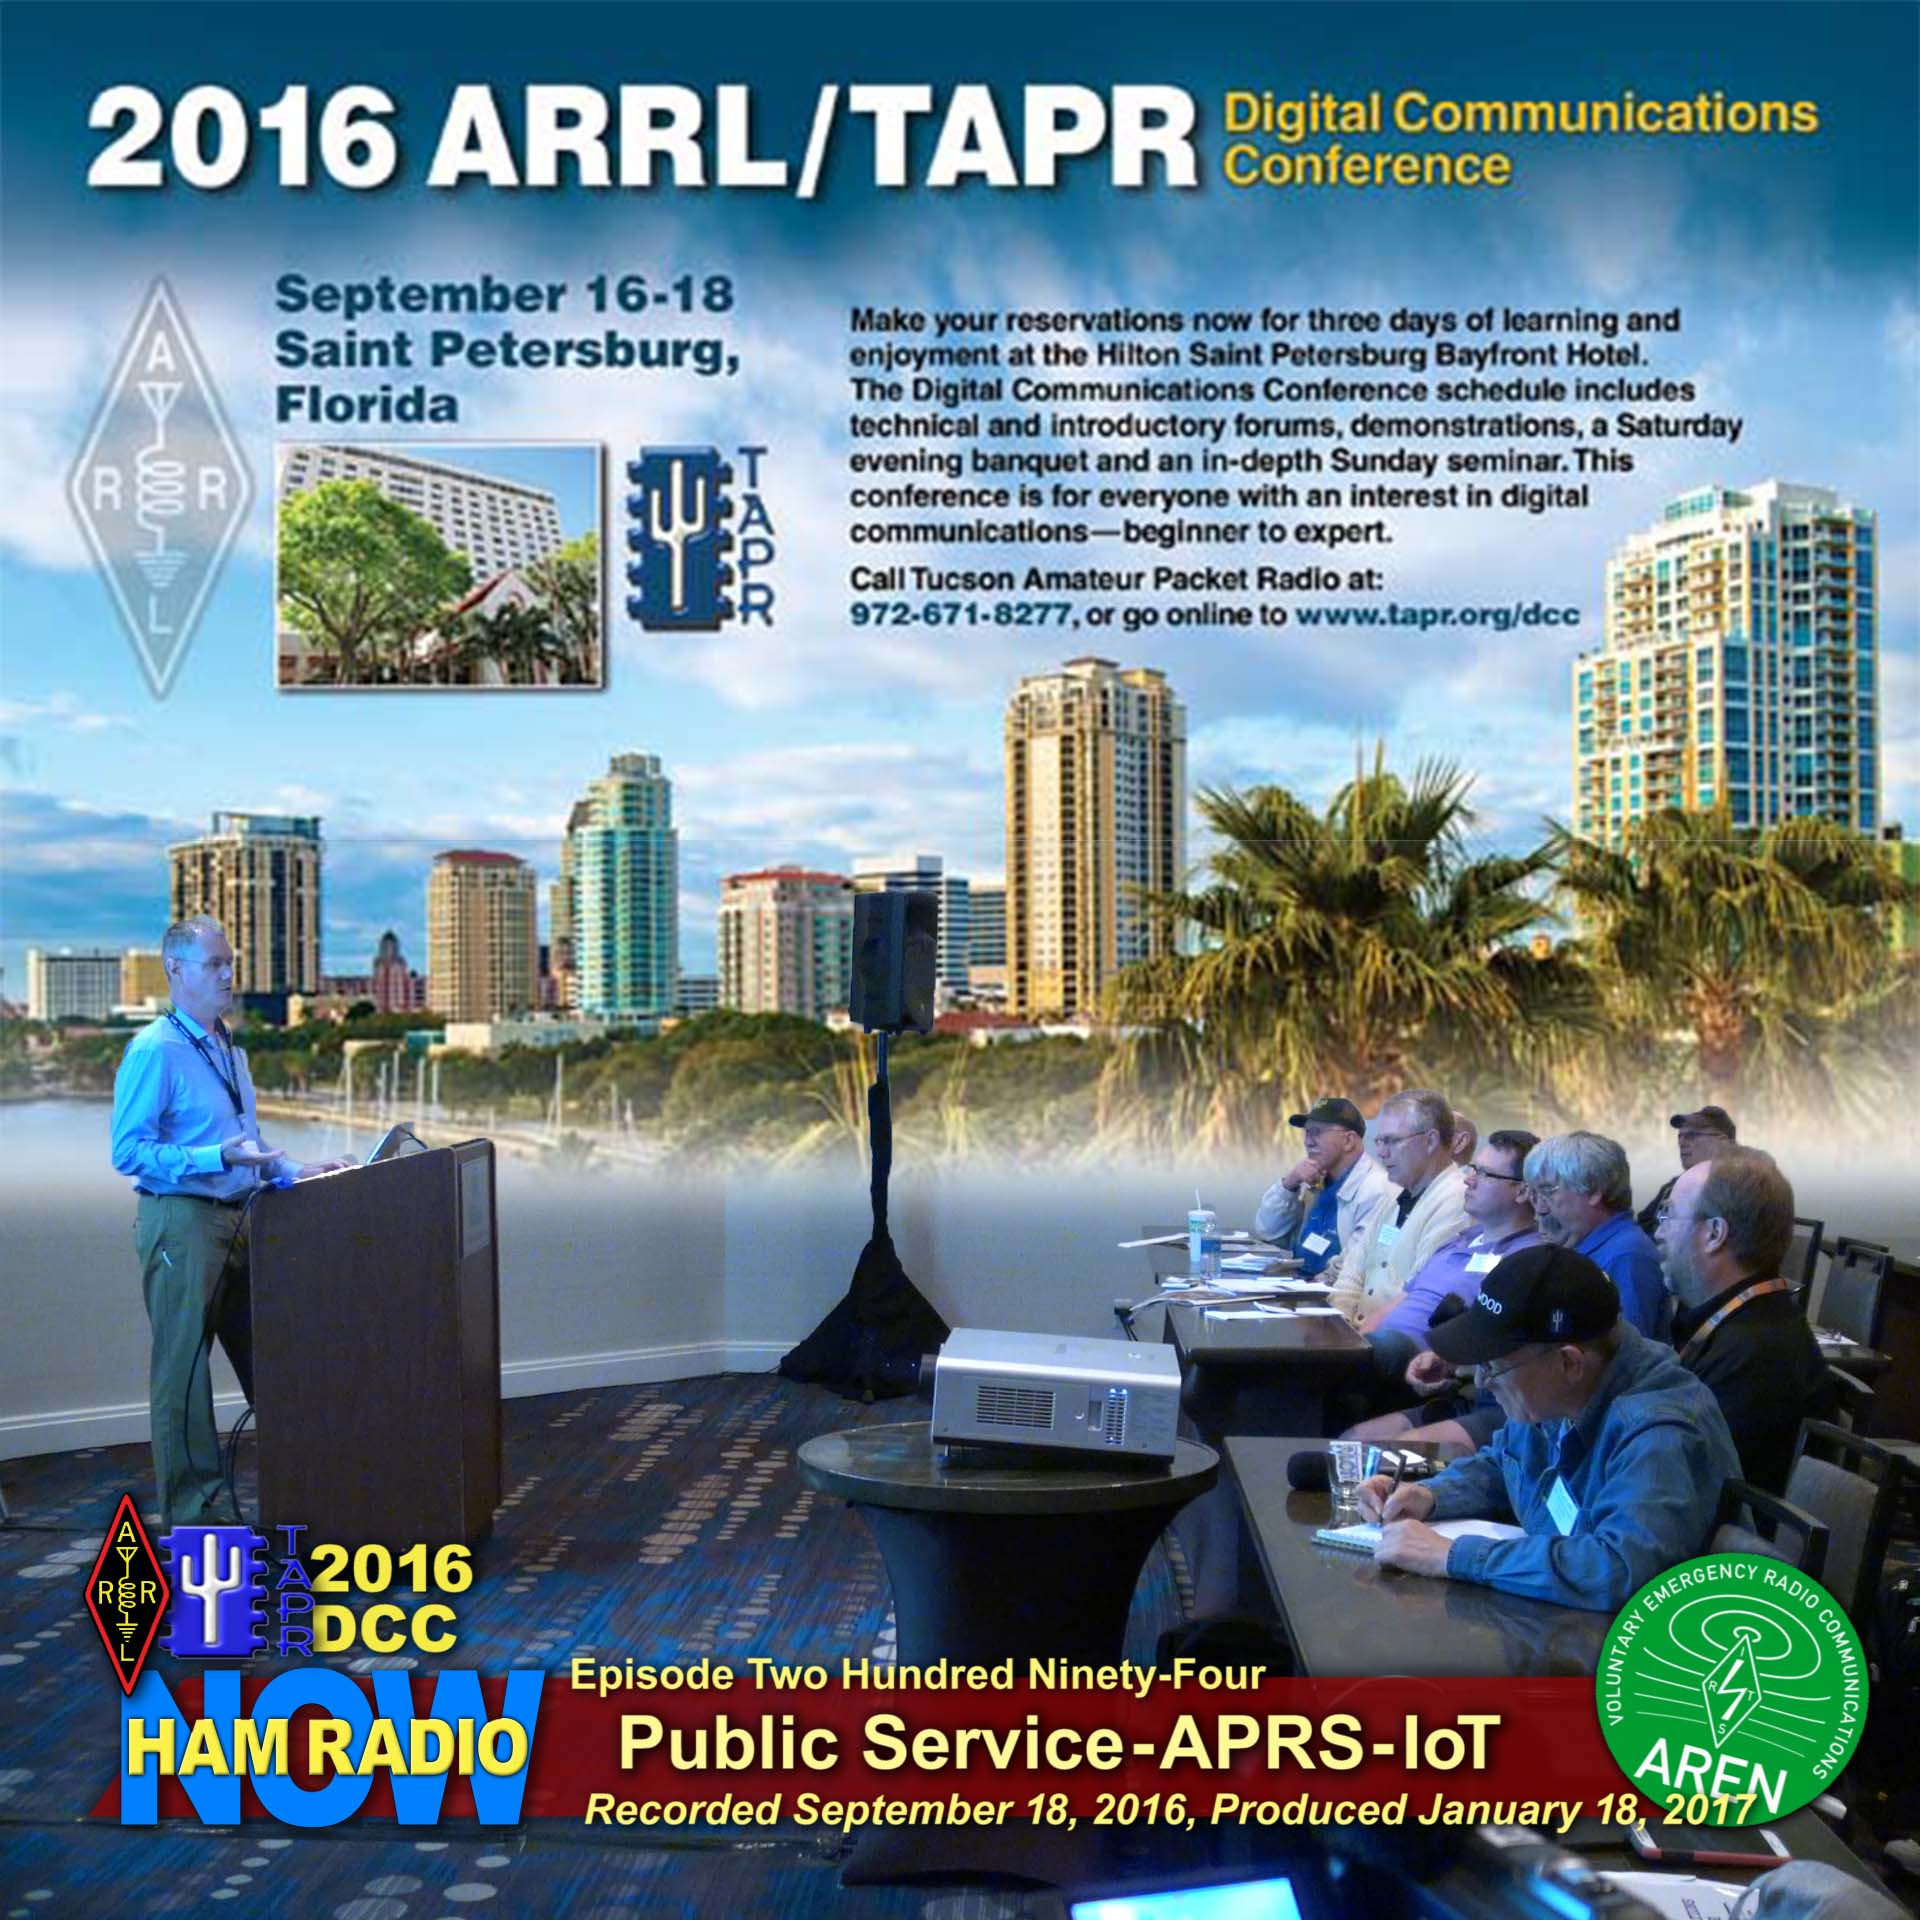 HRN 295 PS-APRS-IoT POSTER SQUARE.jpg